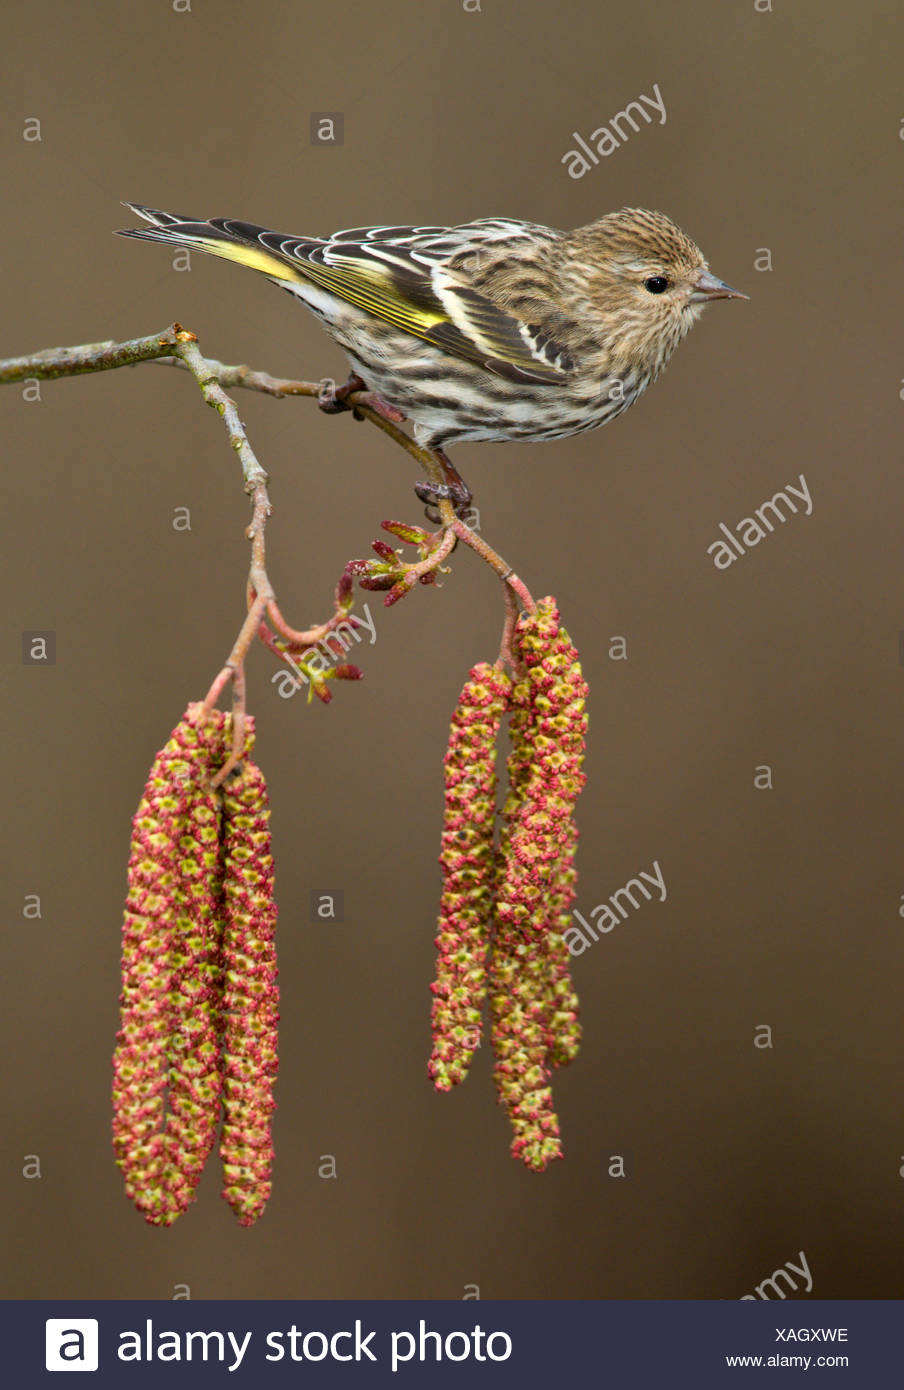 Pine siskin (Carduelis pinus) perched on Alder tree catkins in Victoria, Vancouver Island, British Columbia, Canada - Stock Image